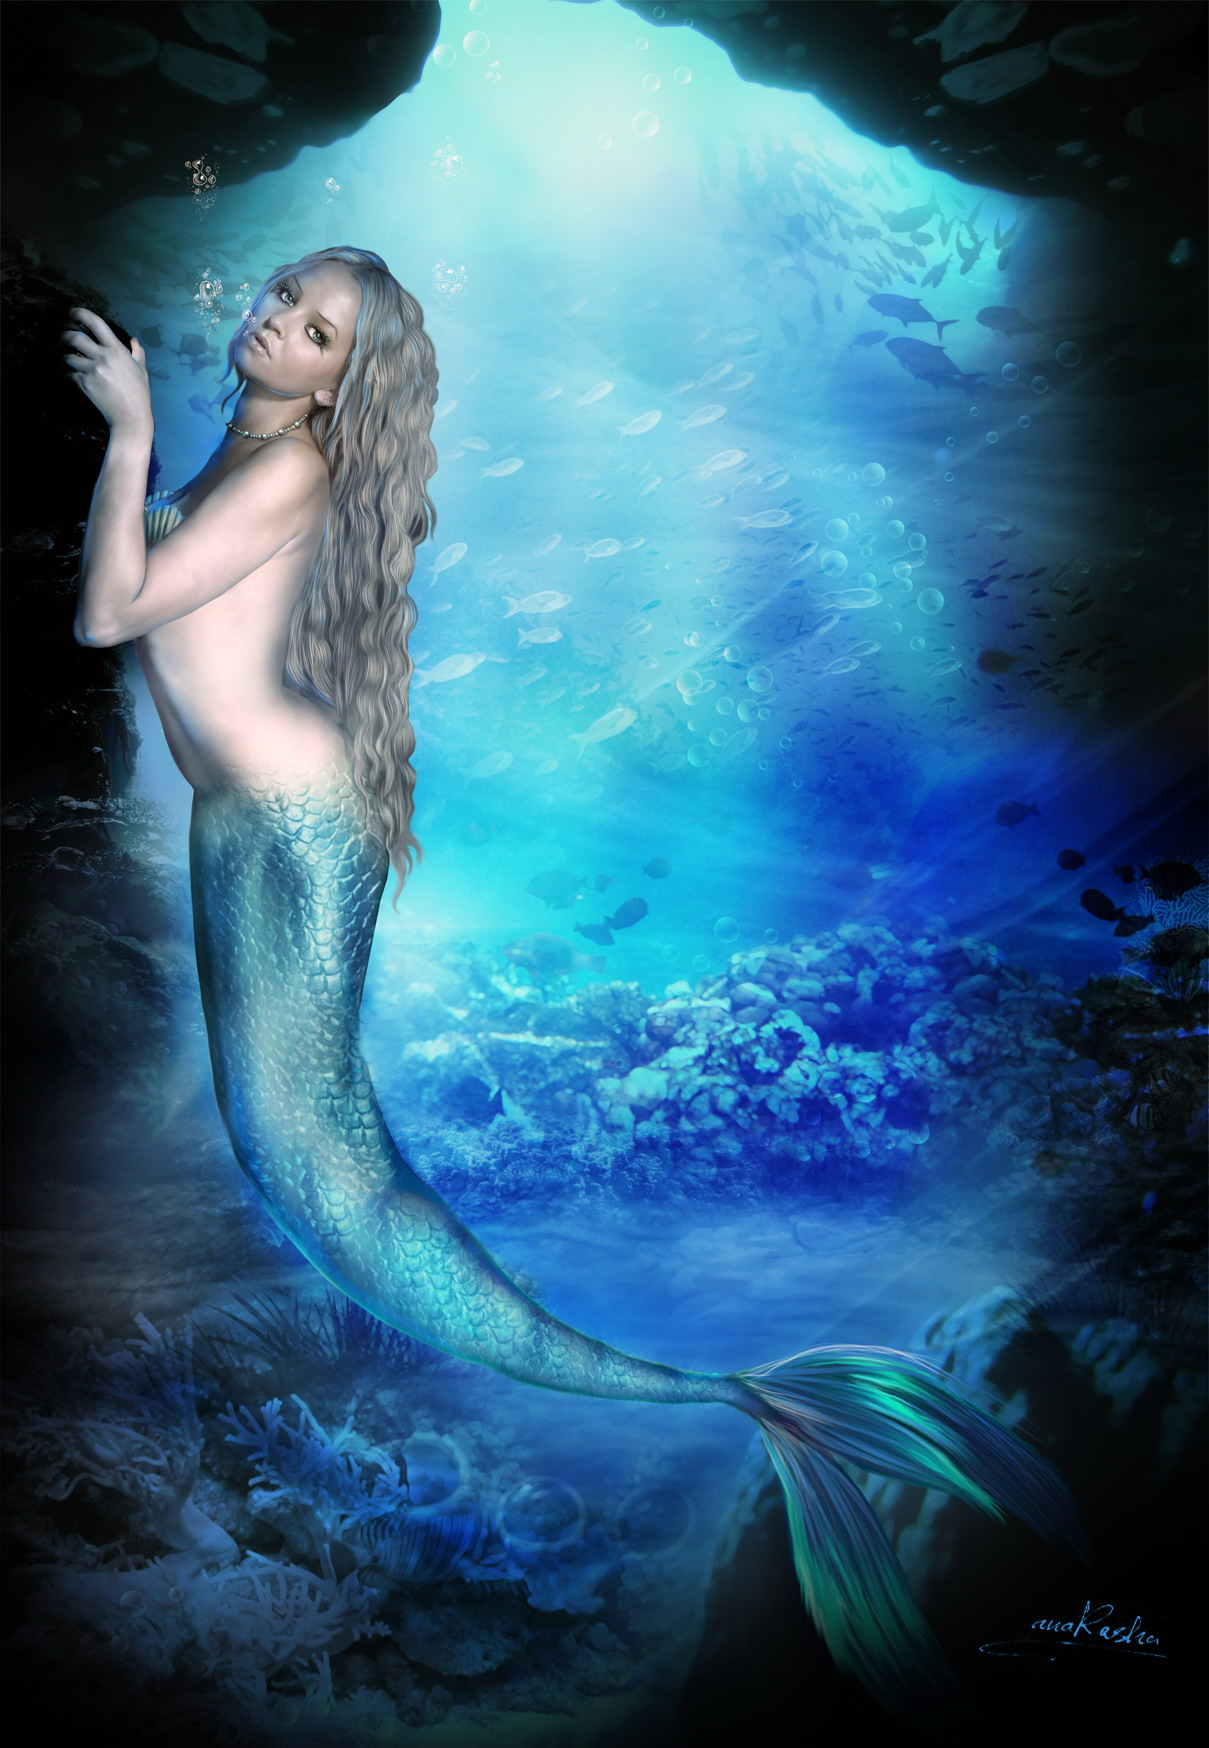 Mermaid Beautiful Concept Art and Pictures.